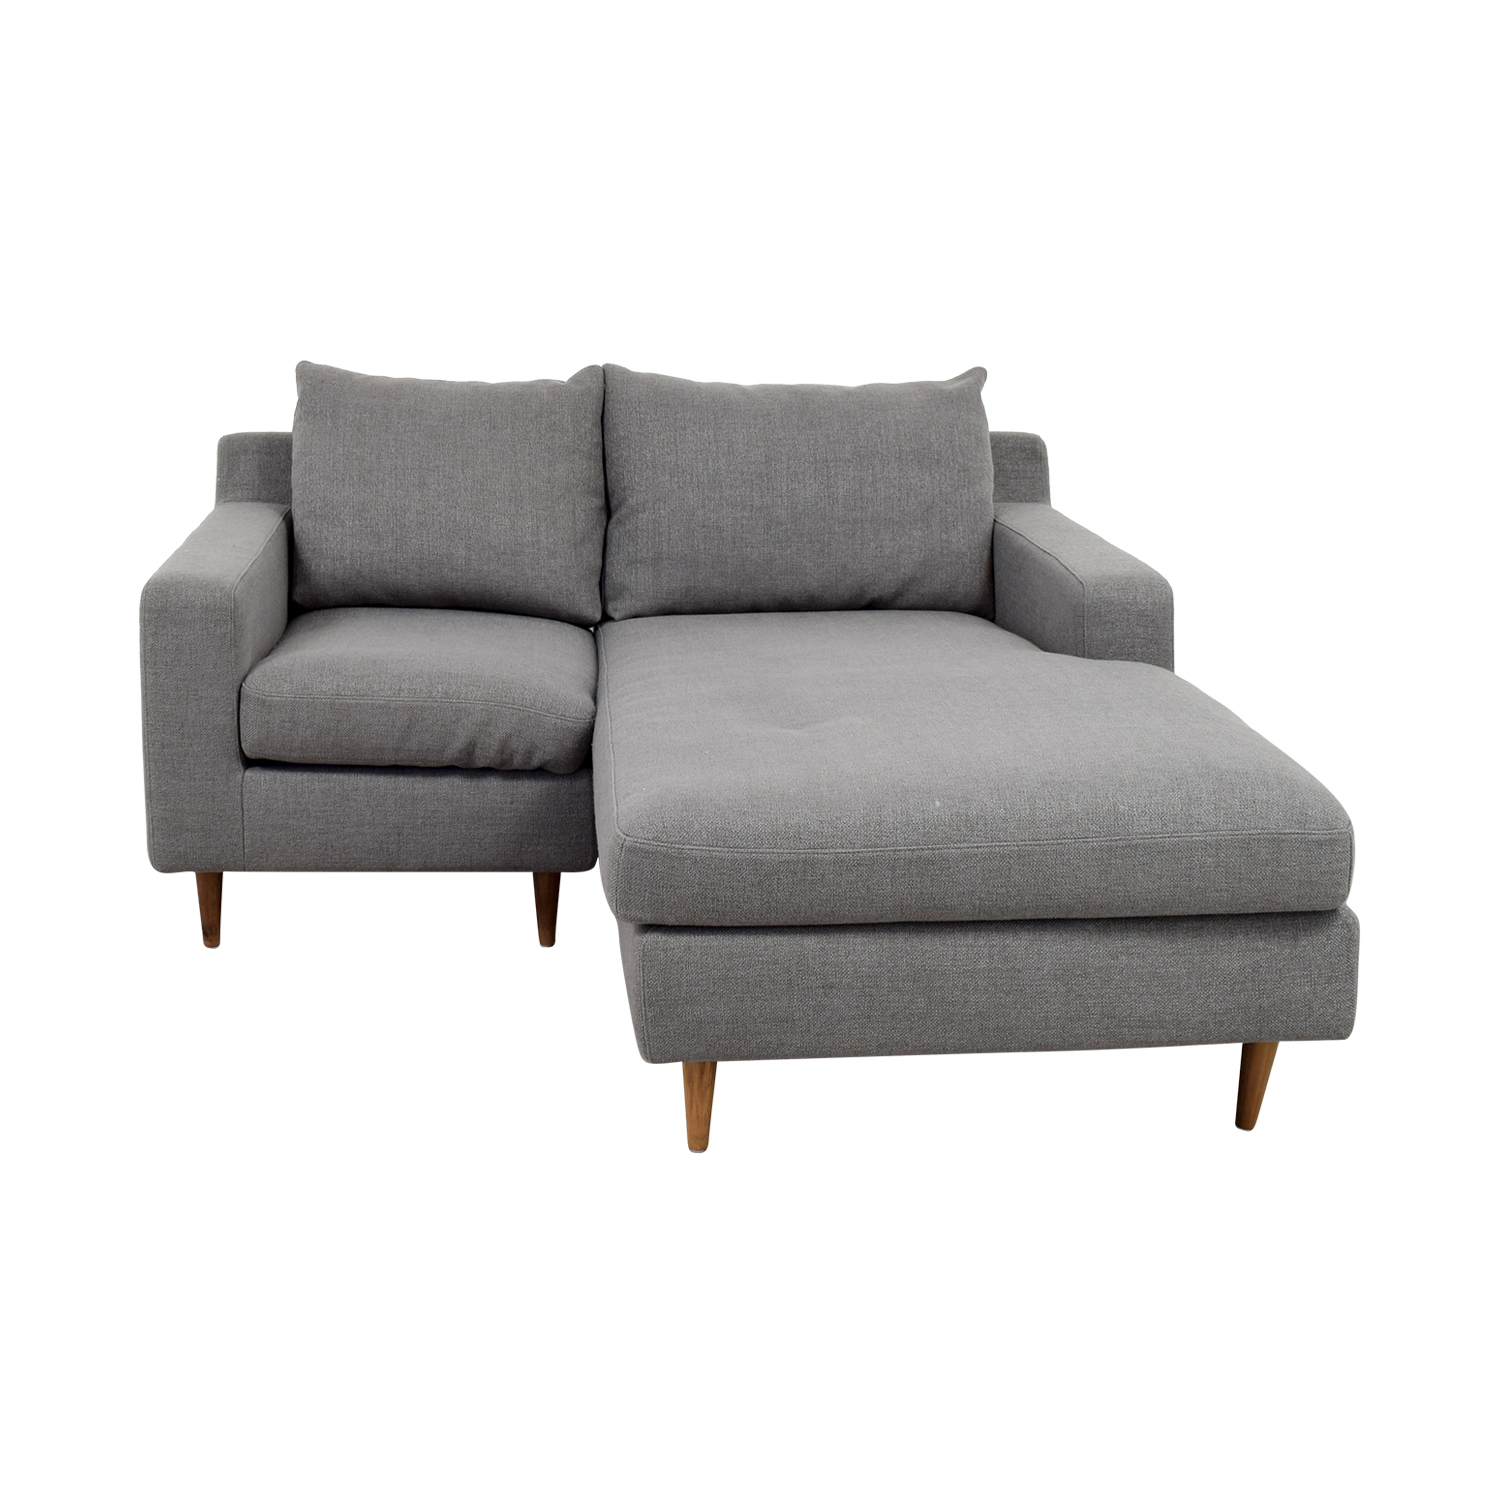 Interior Define Custom Grey Loveseat with Chaise / Sofas